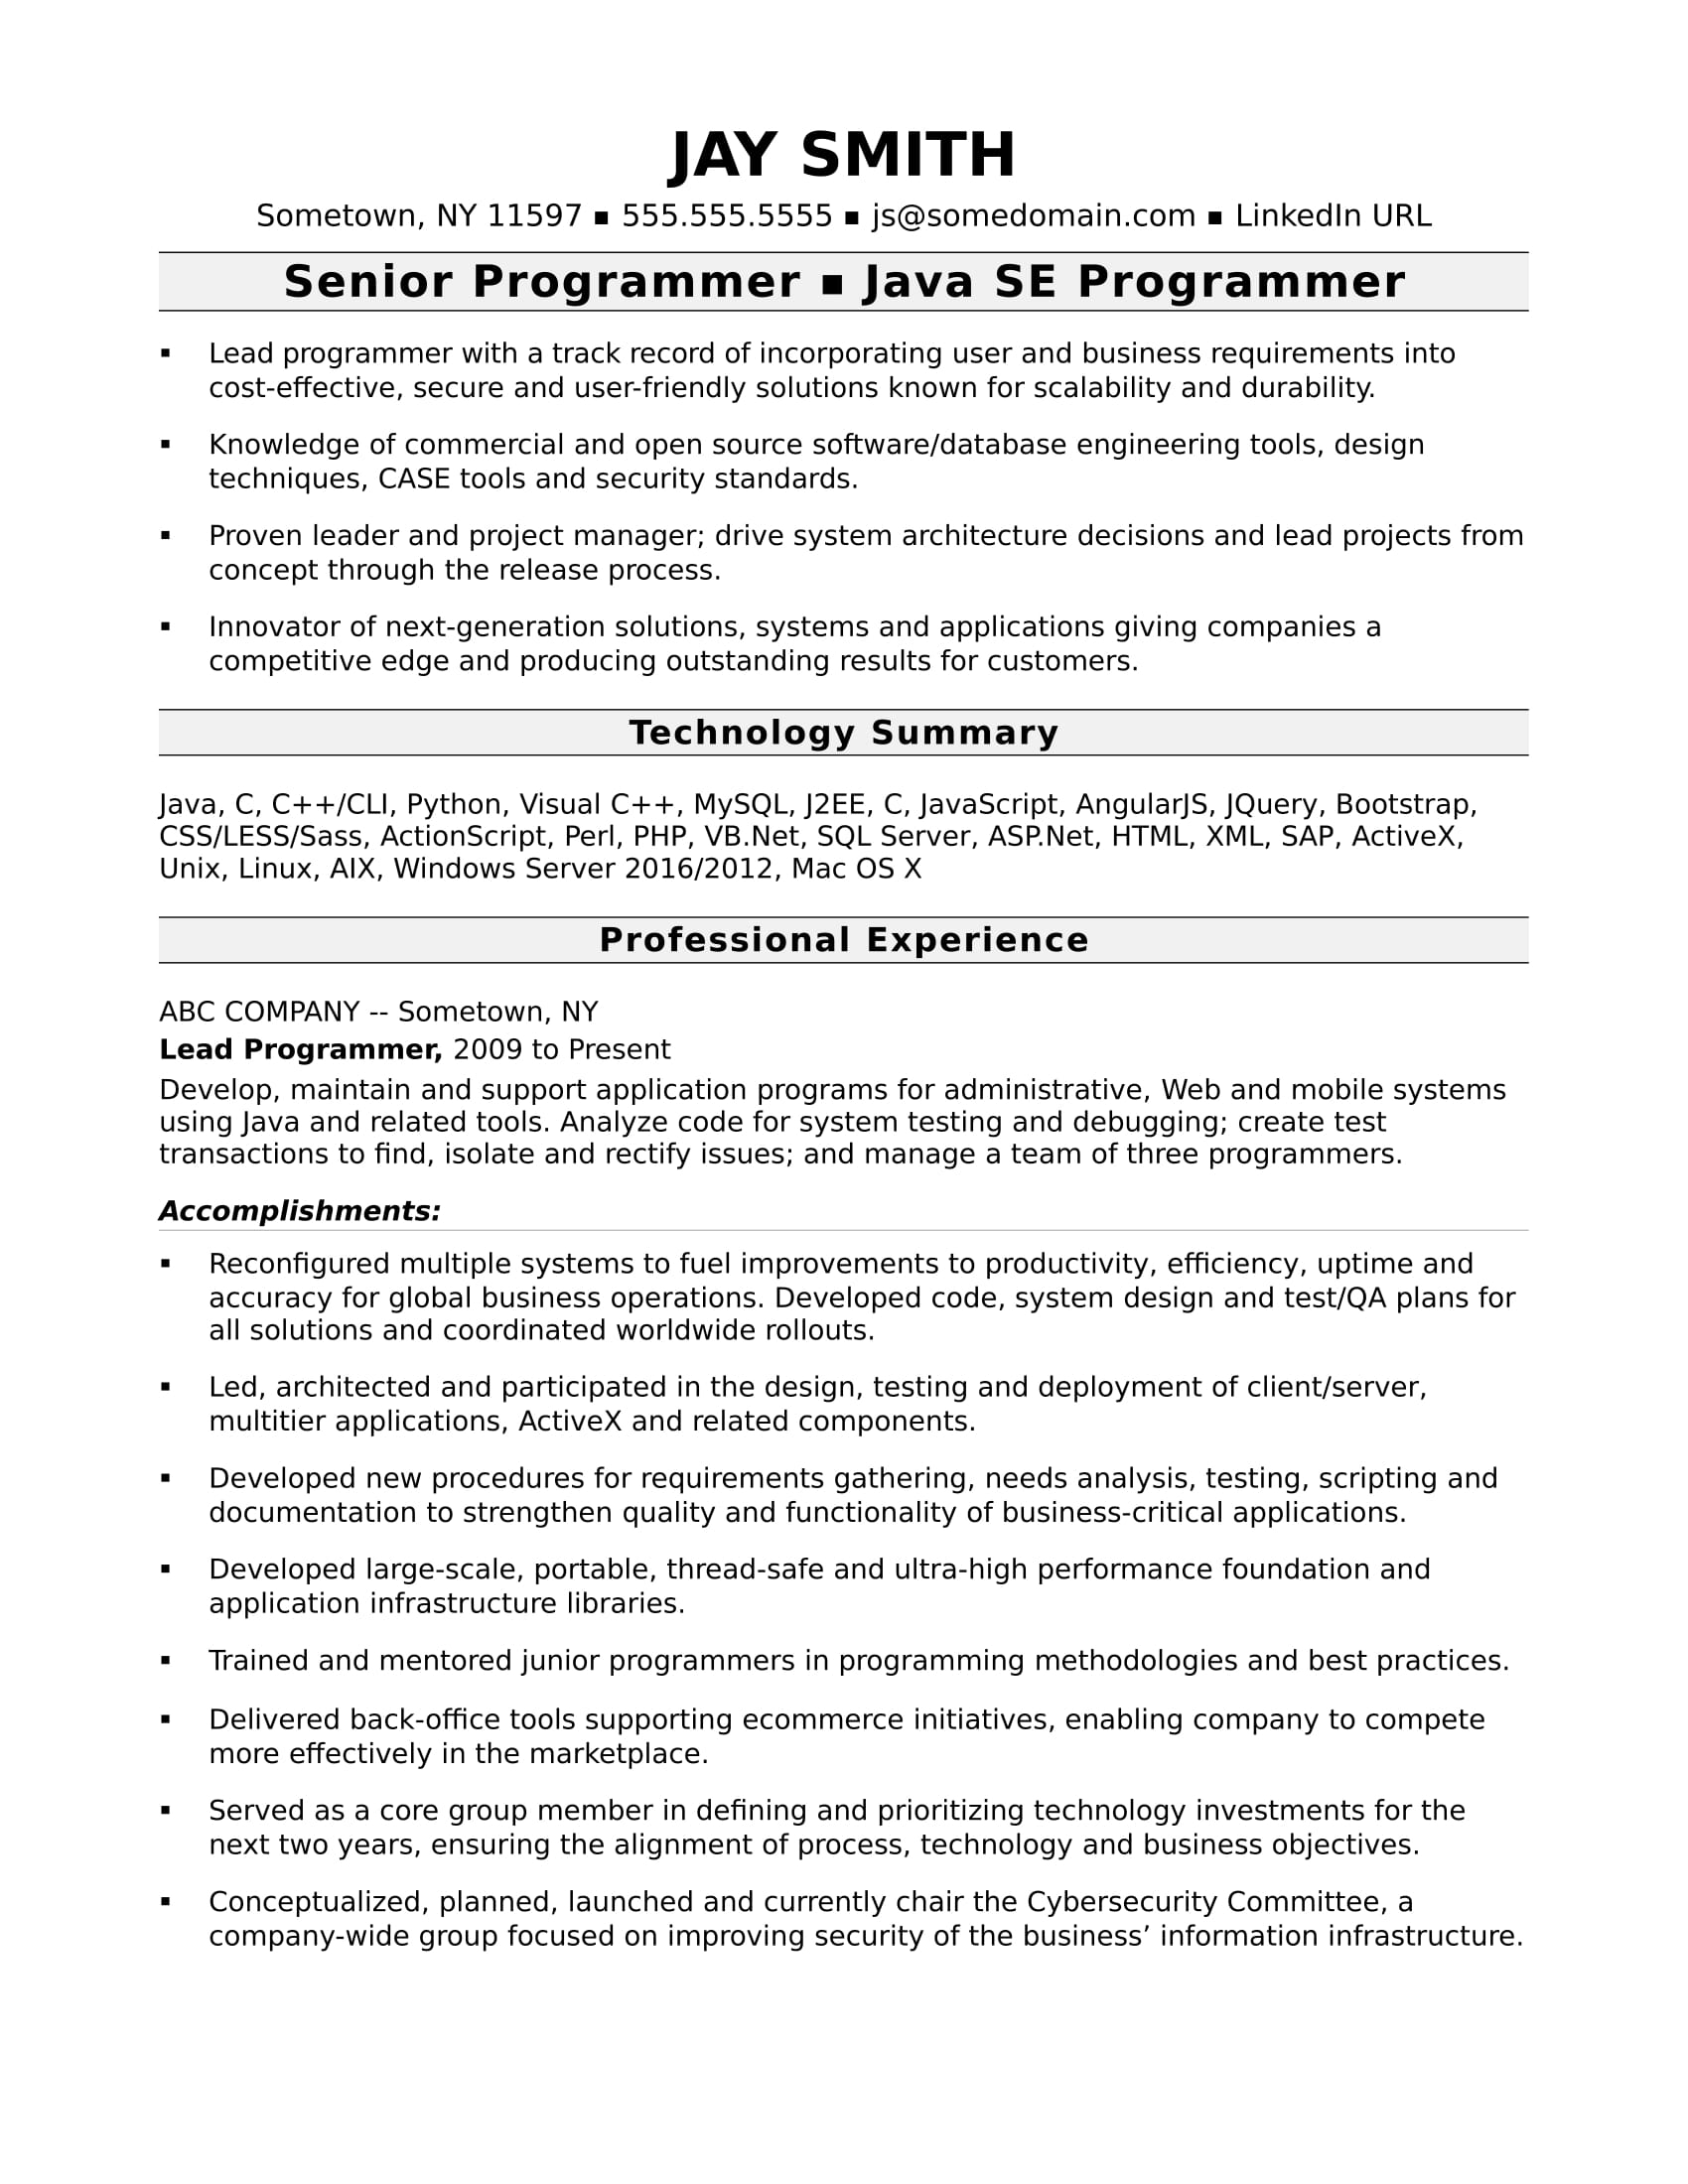 Sample Resume For An Experienced Computer Programmer Monstercom